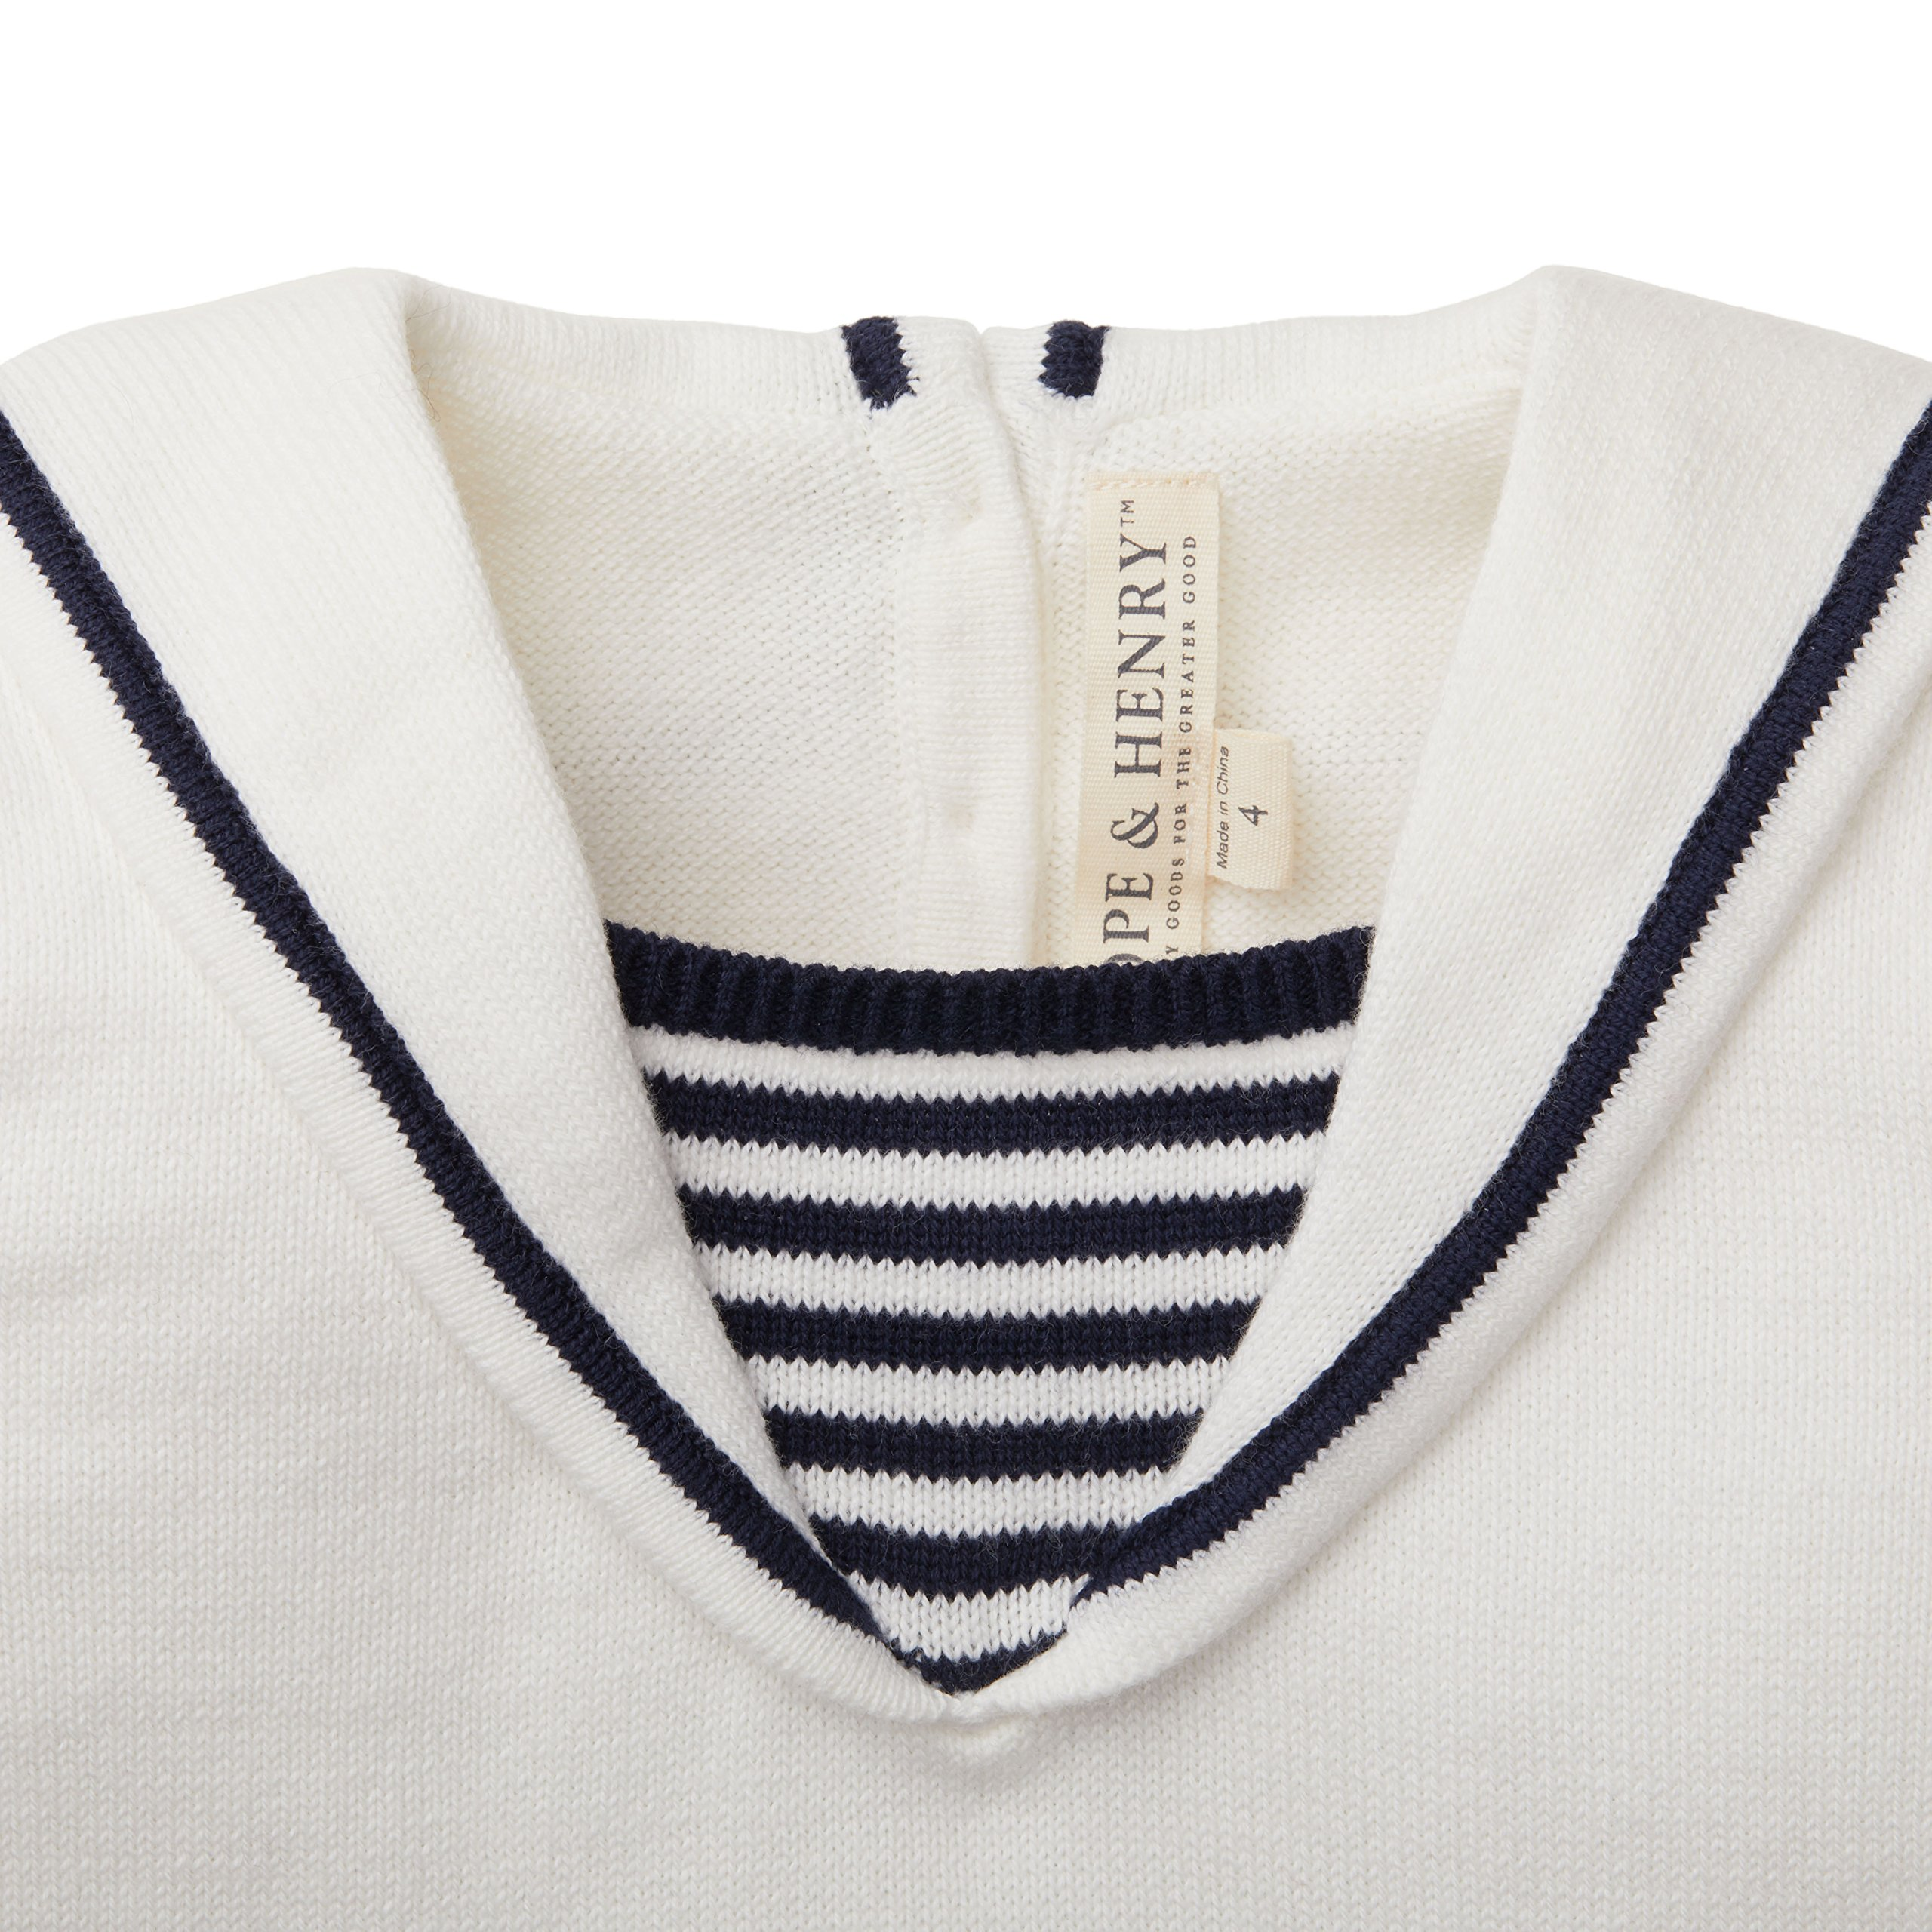 Hope and Henry Girls White Sailor Sweater Top Made With Organic Cotton by Hope & Henry (Image #3)